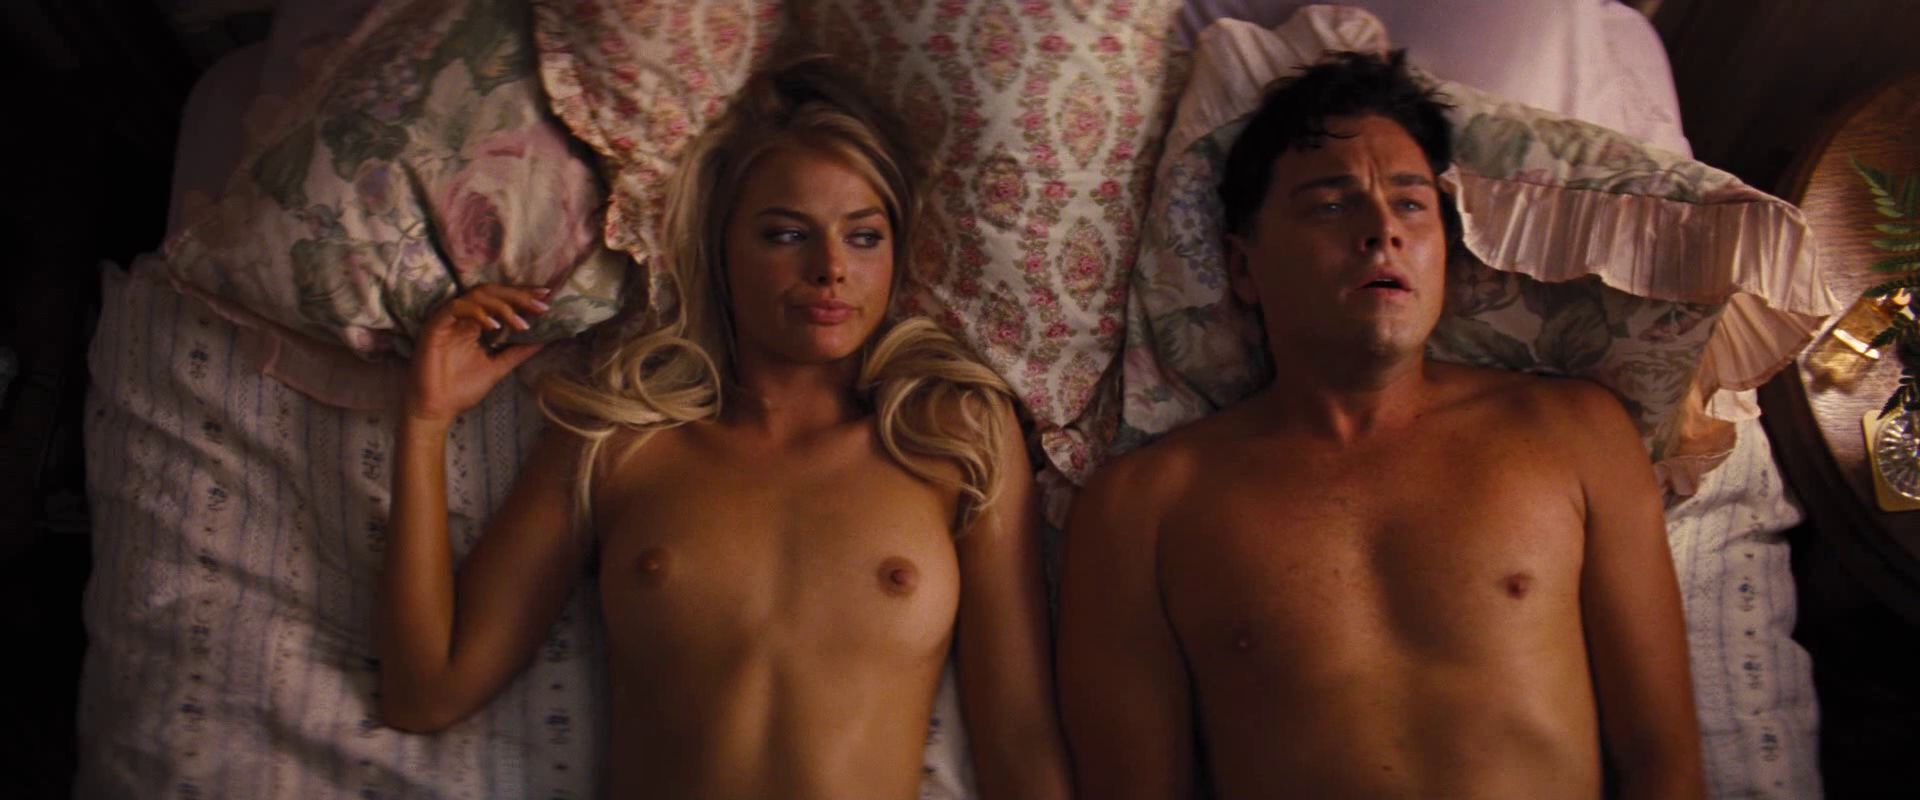 Margot robbie naked scene